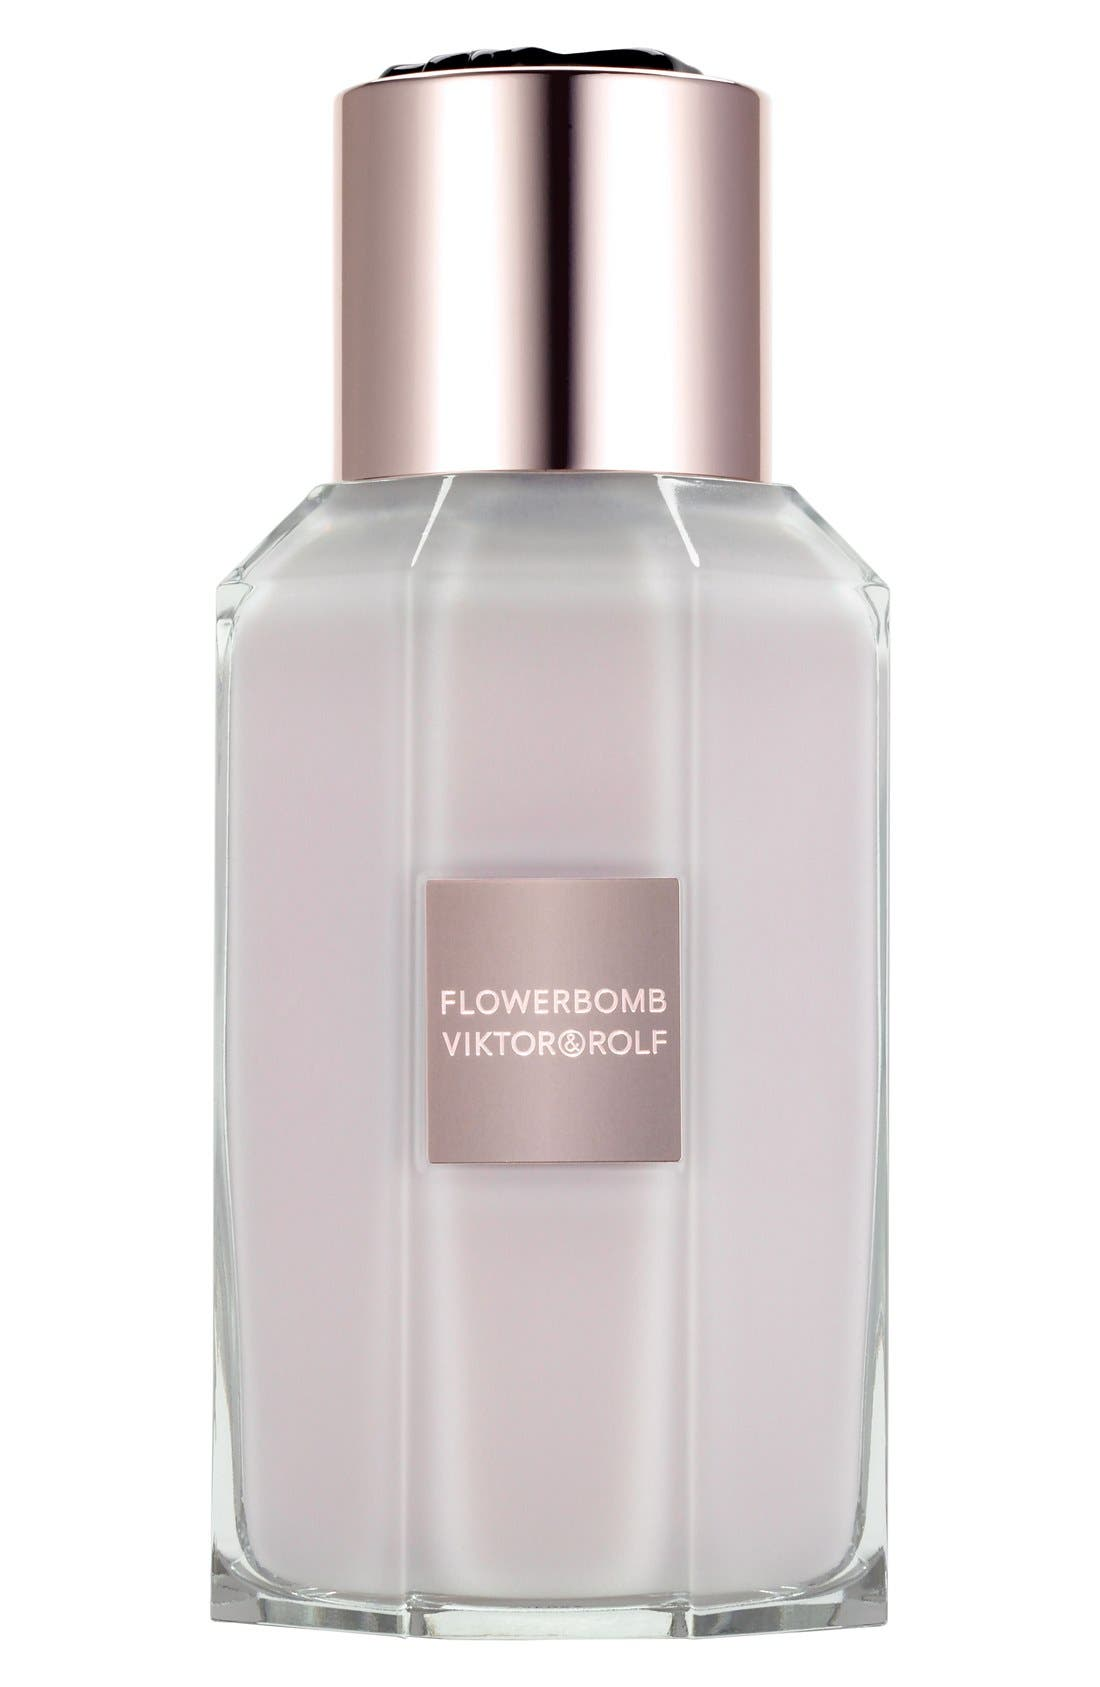 Flowerbomb Foaming Bath,                             Main thumbnail 1, color,                             000